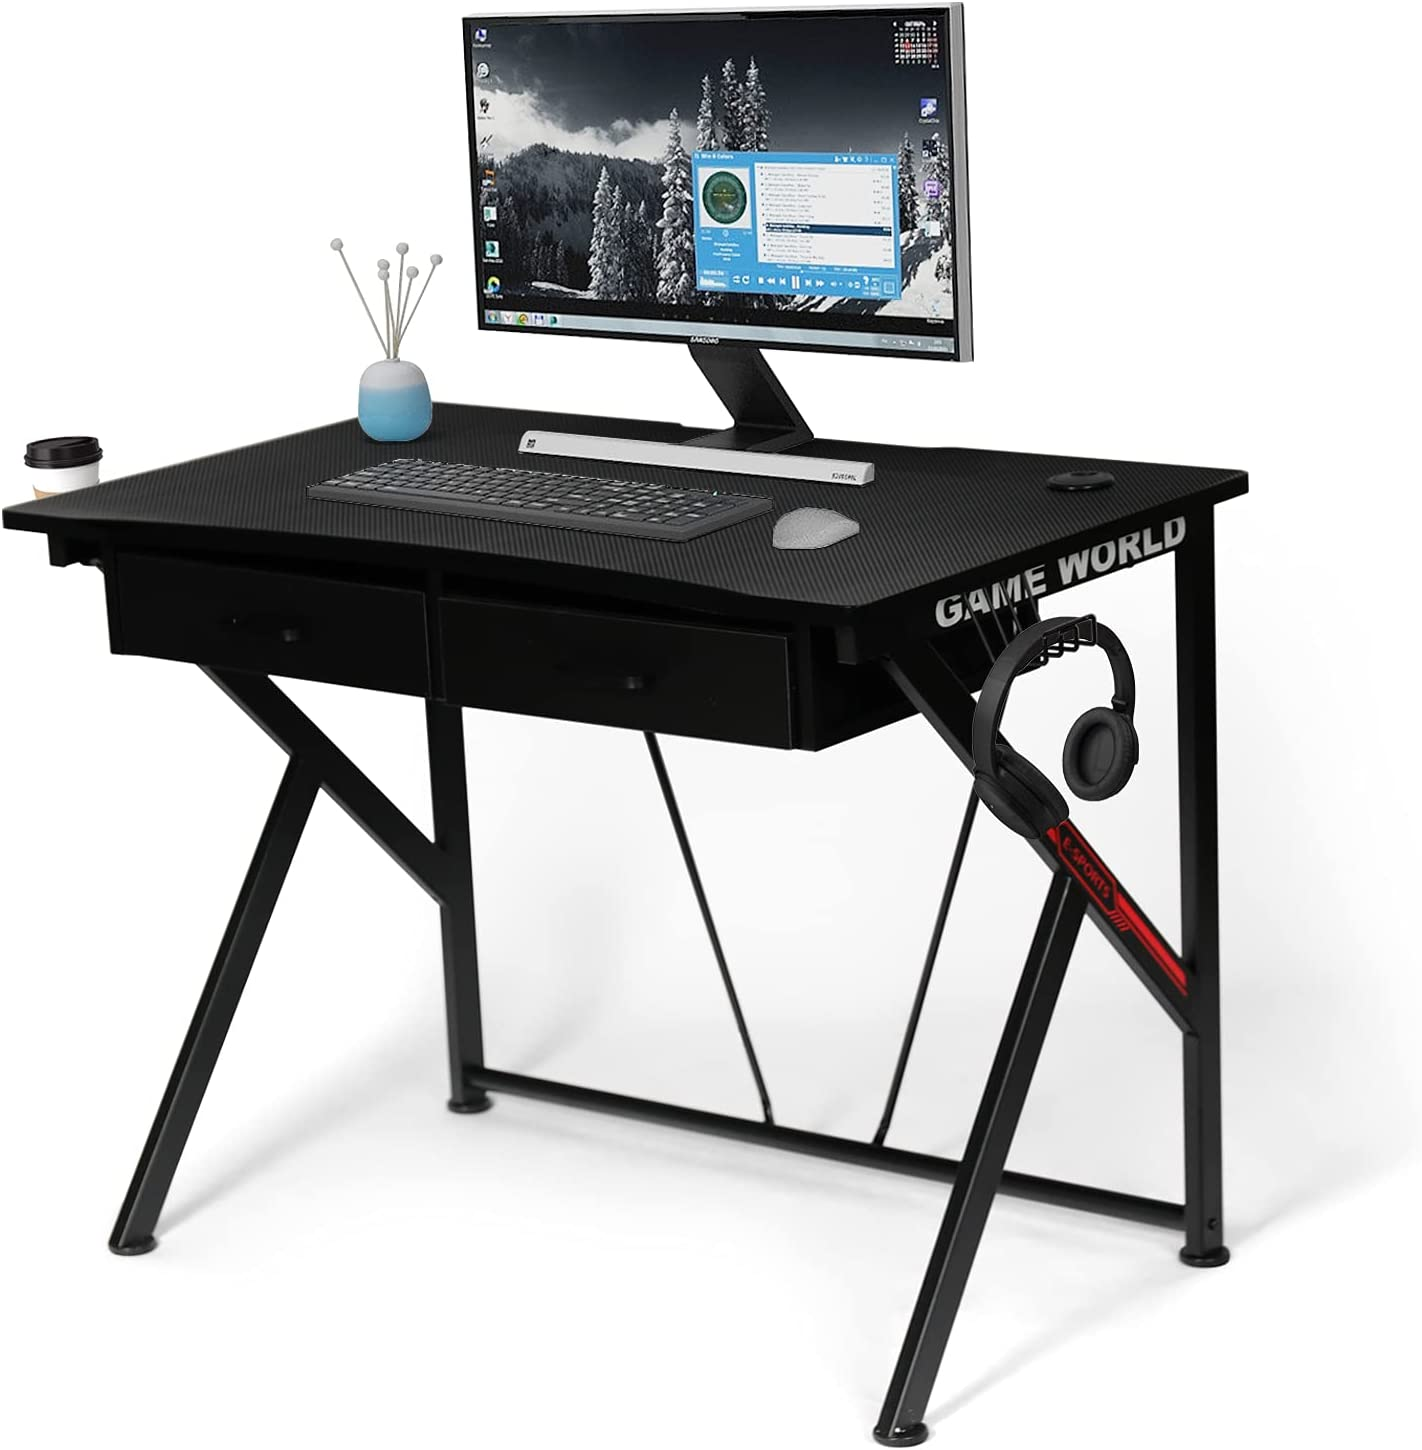 LYNSLIM Black Gaming Desk with Drawers PC 40